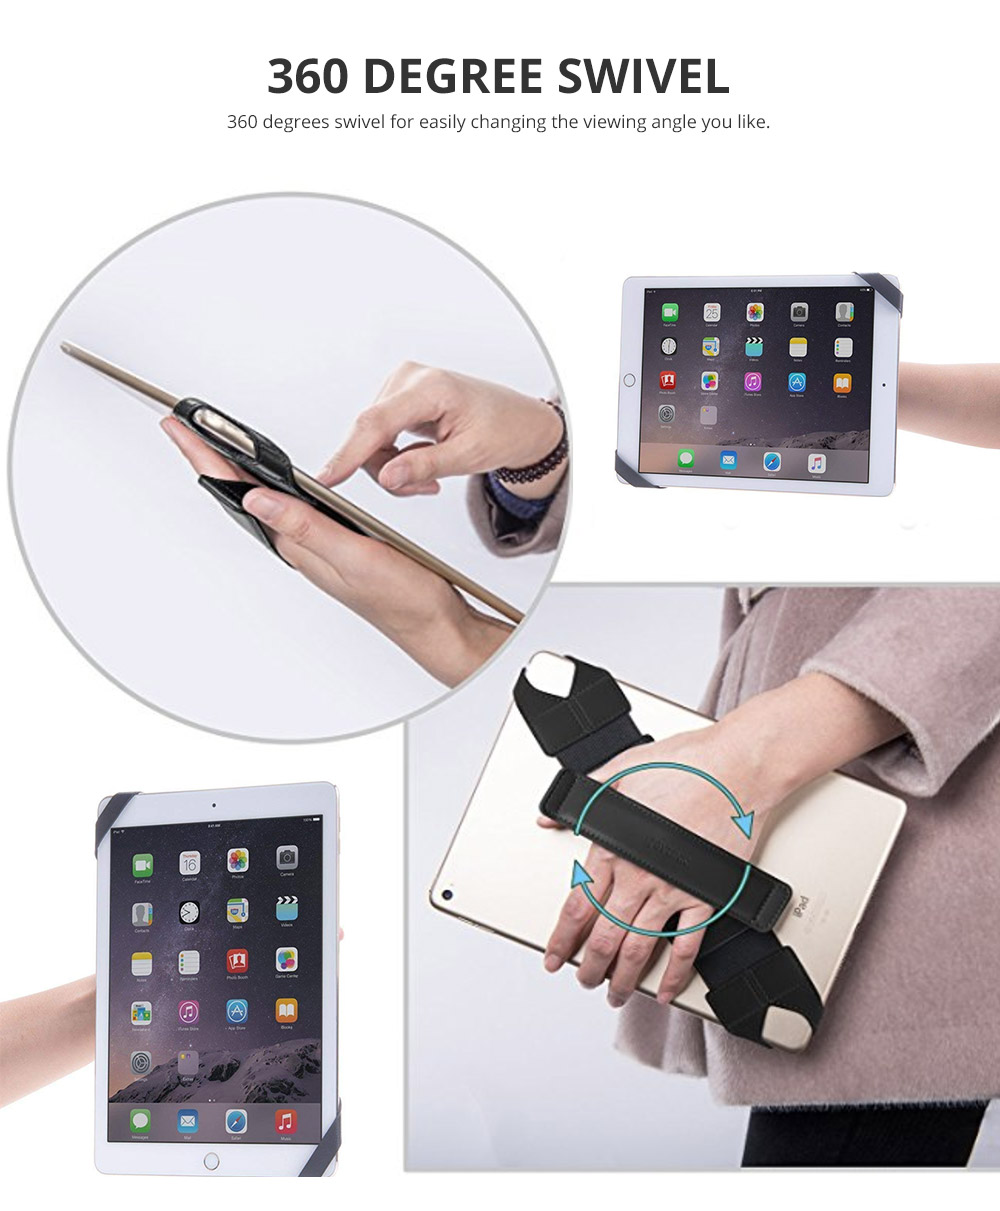 Universal PU Leather Hand Strap Holder for Phones Tablets, 360 Degrees Swivel Leather Handle Grip with Elastic Belt for 9.7 inches Pad and 10.1 inches iPad or Android devices 10